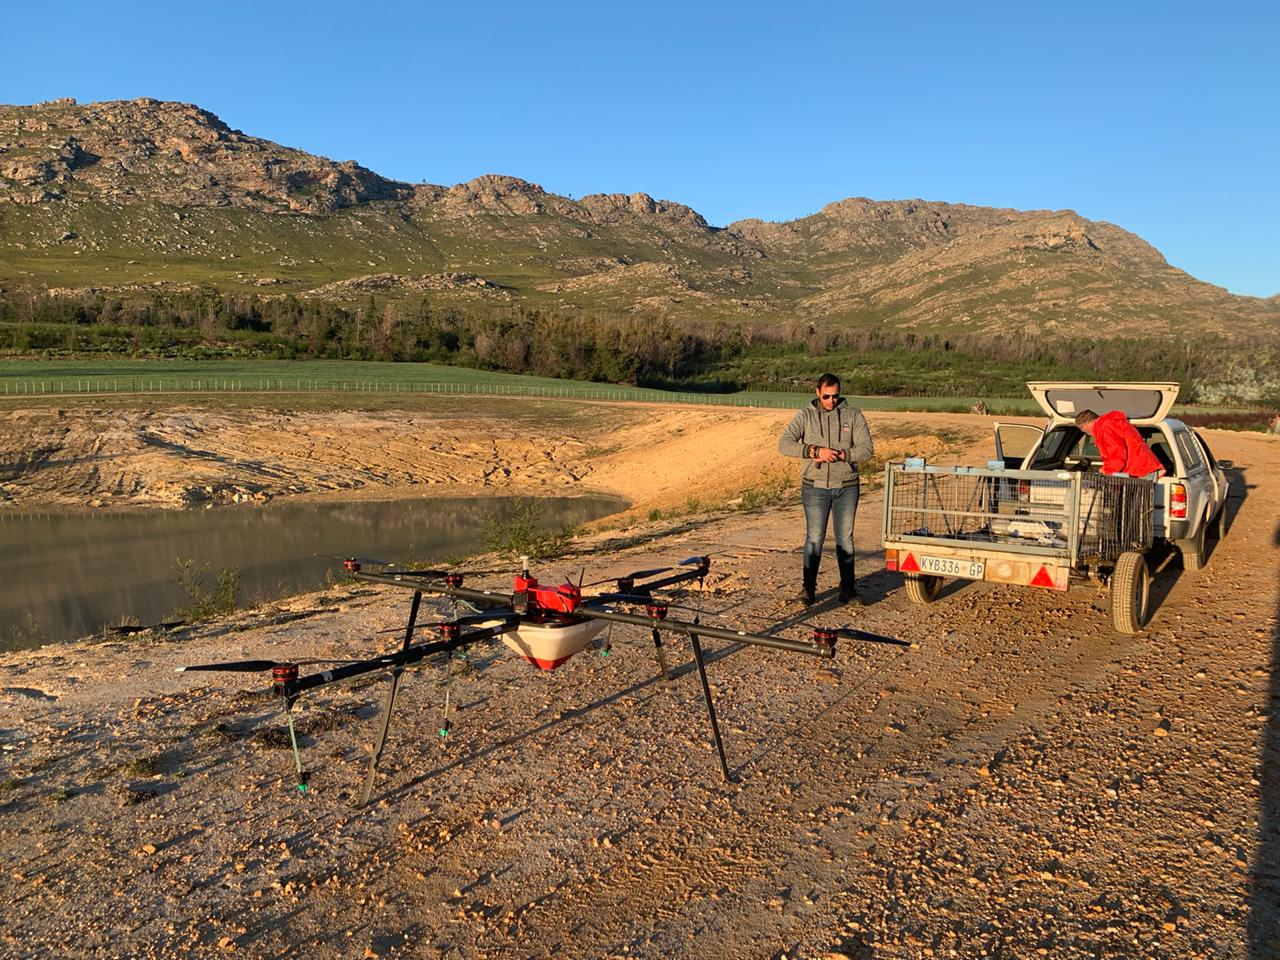 Karoo farmers take to the sky in efforts to curb invasive alien plants